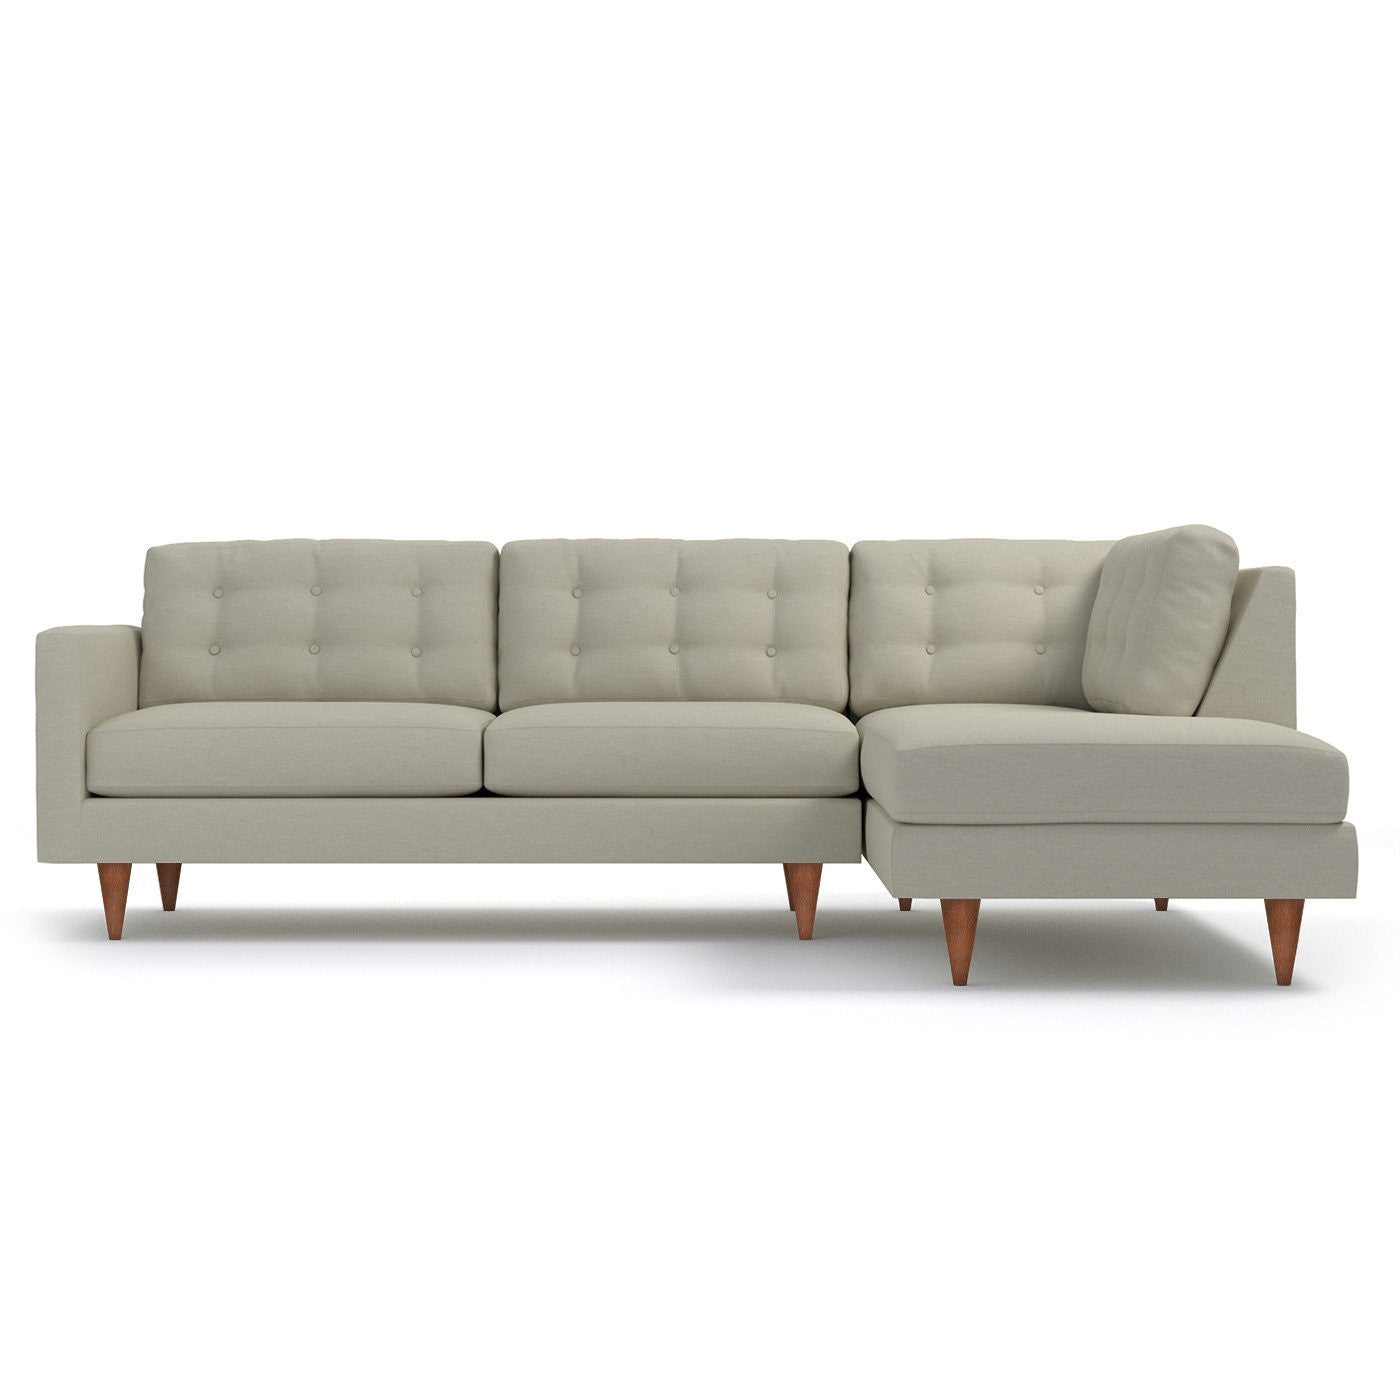 Logan 2pc Sectional Sofa  sc 1 st  Apt2B : cream sectional couch - Sectionals, Sofas & Couches